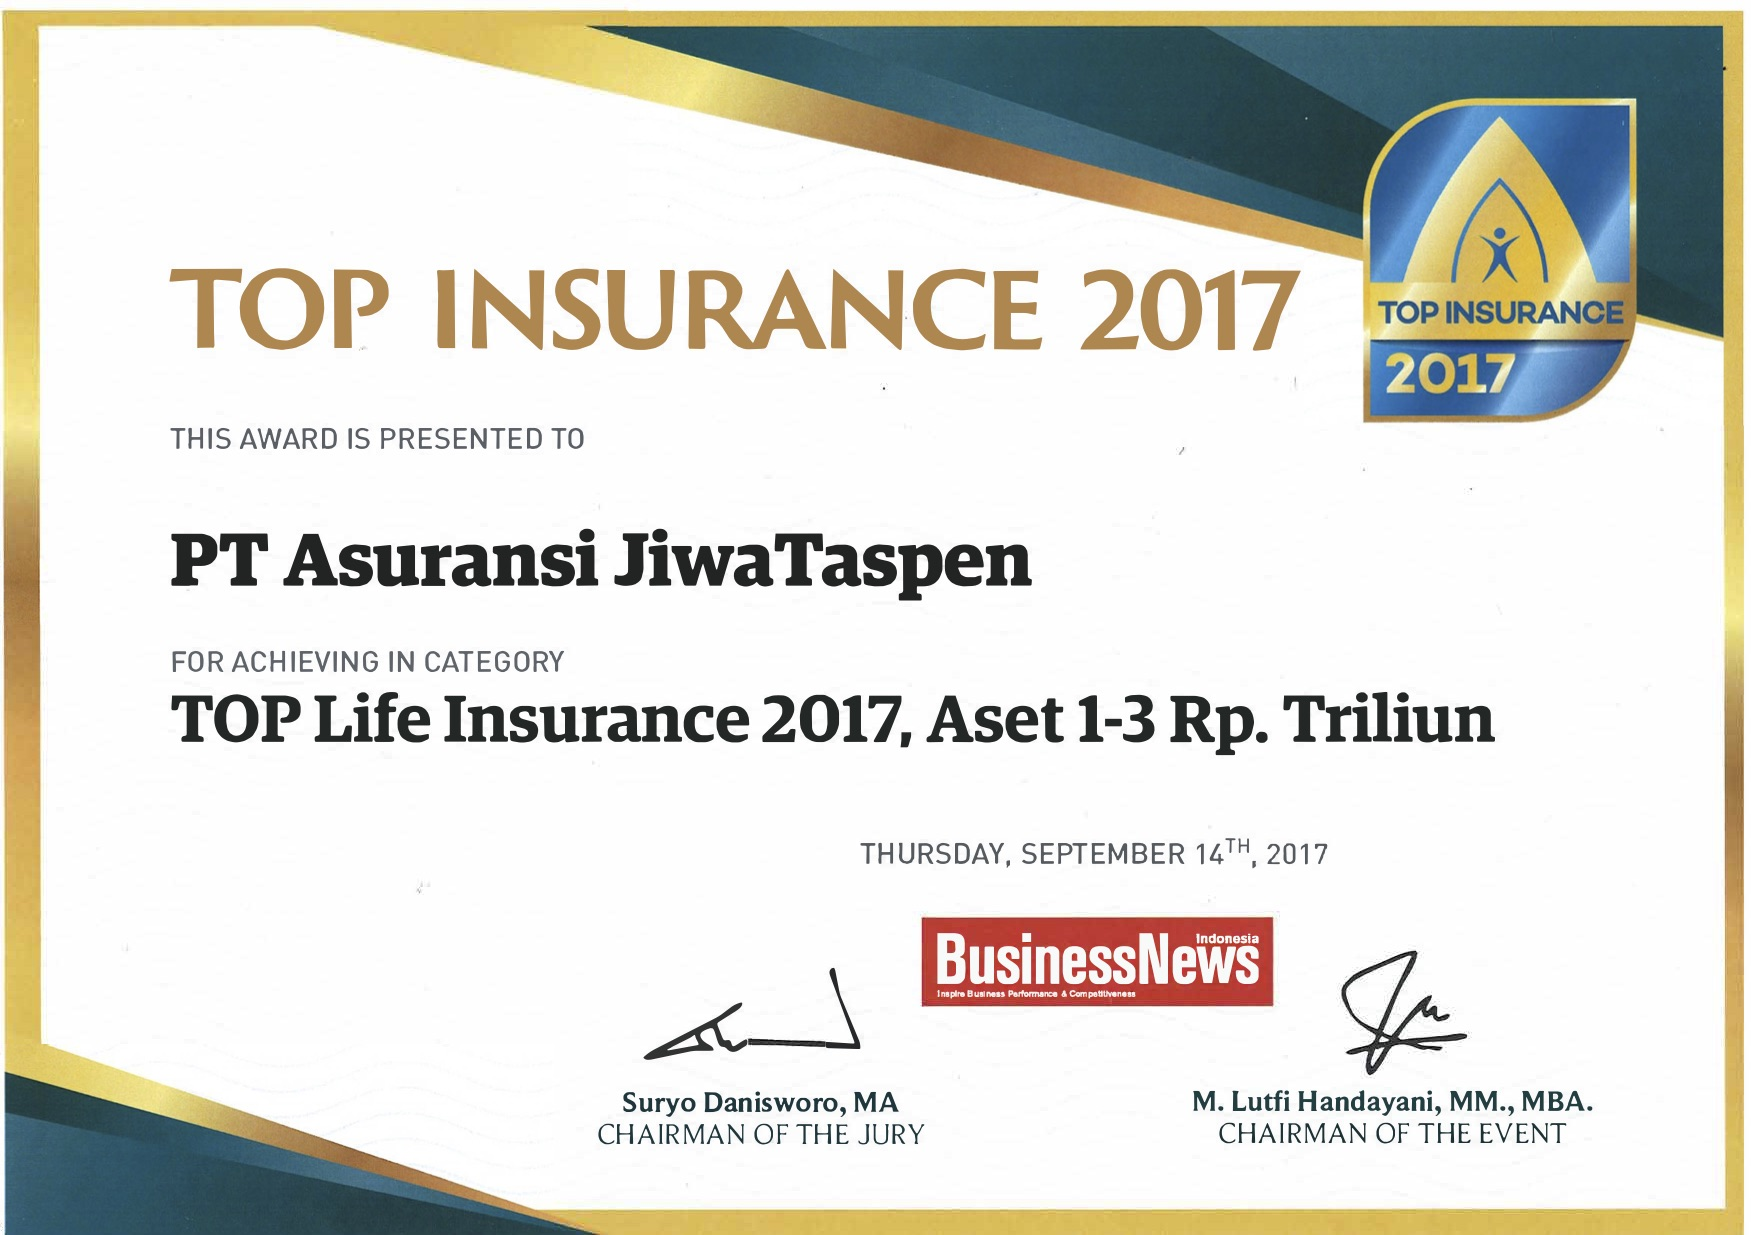 Top Life Insurance 2017